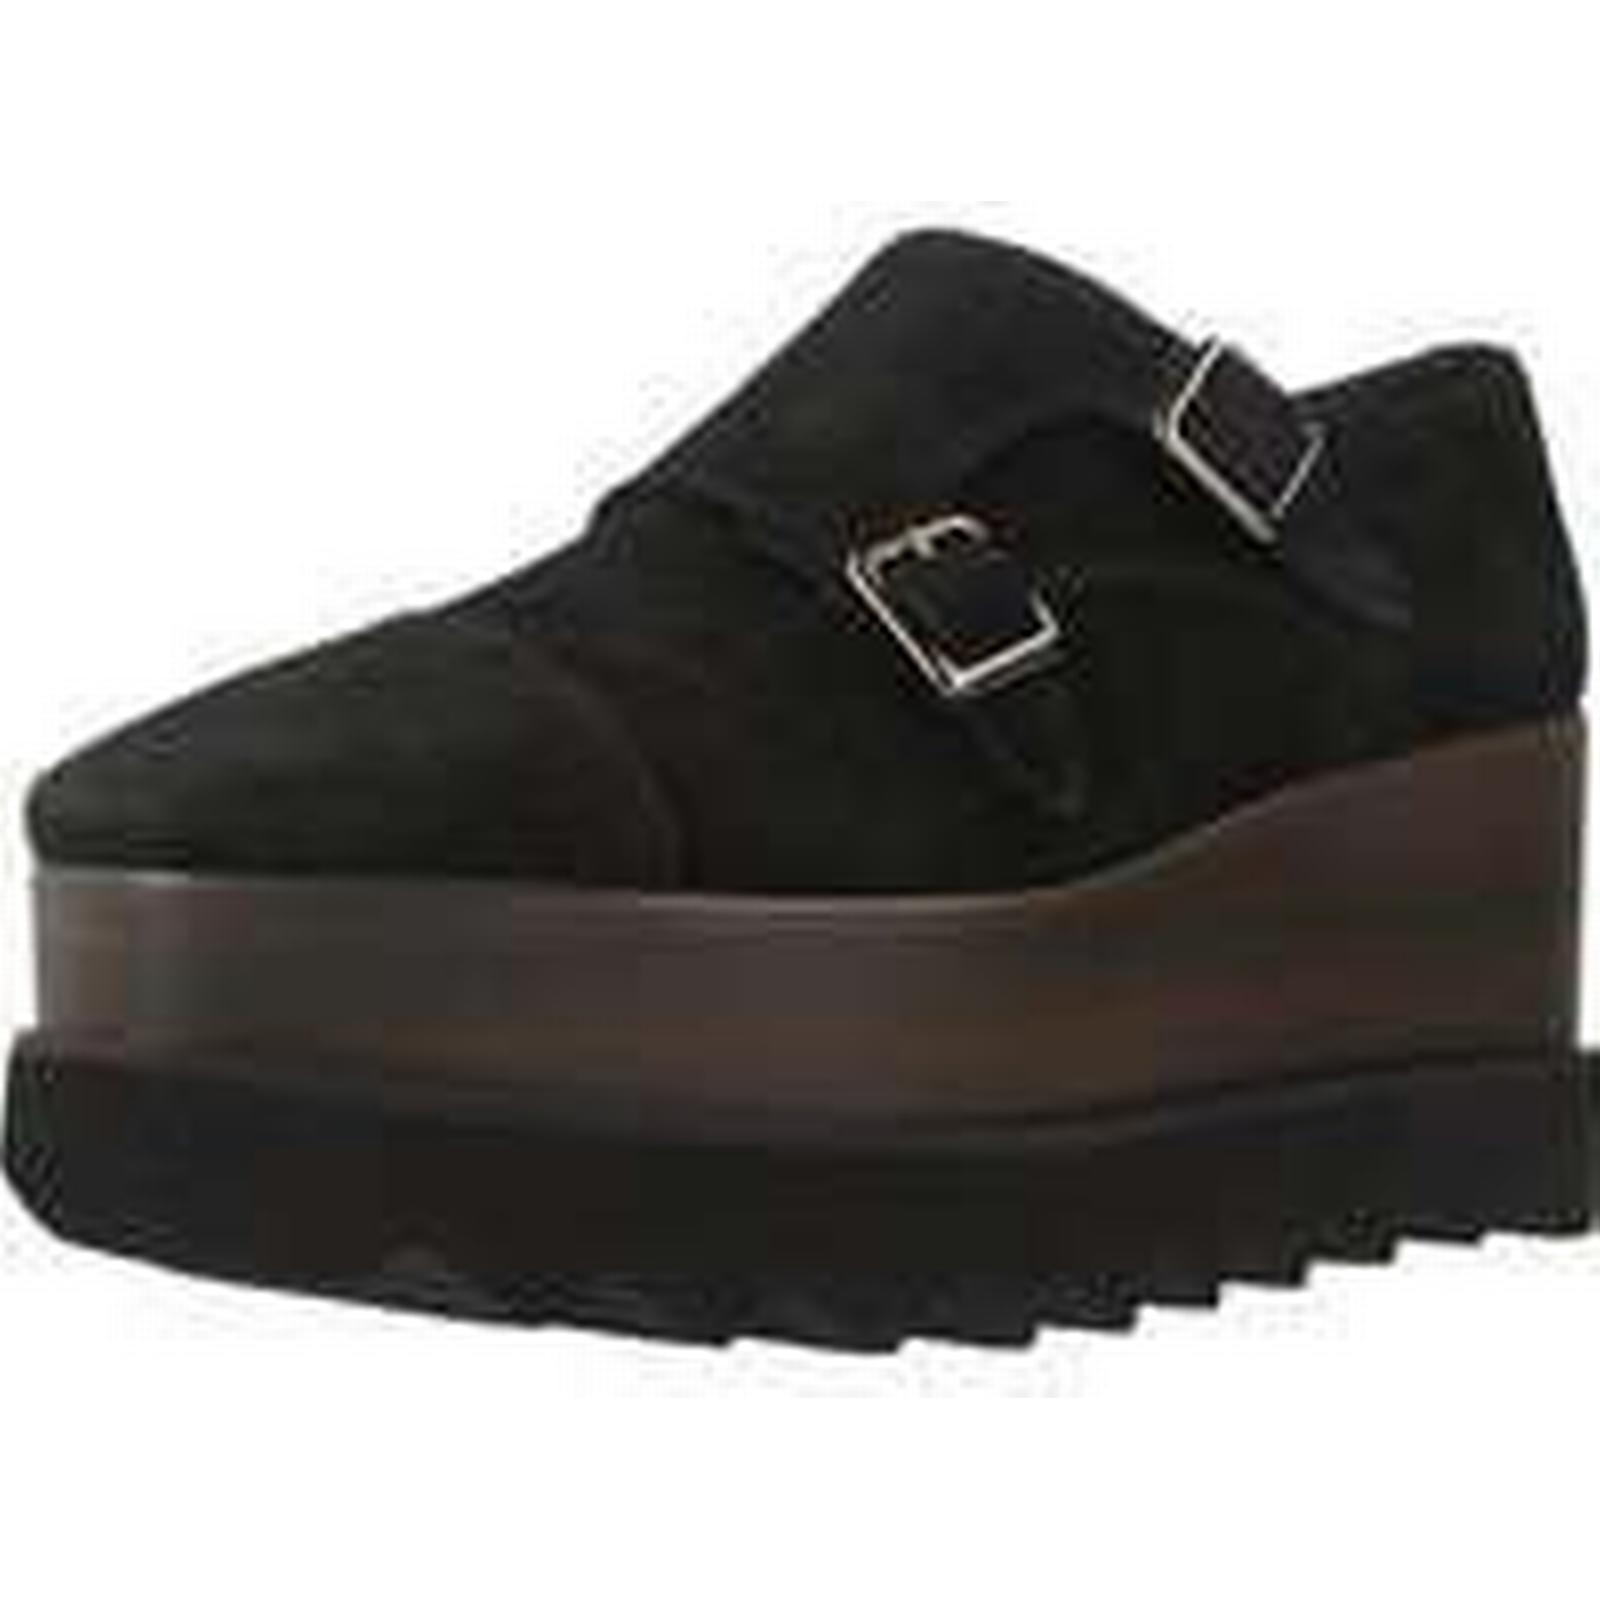 Spartoo.co.uk Shoes Alpe 3199 11 women's Shoes Spartoo.co.uk (Trainers) in Black c3bc76